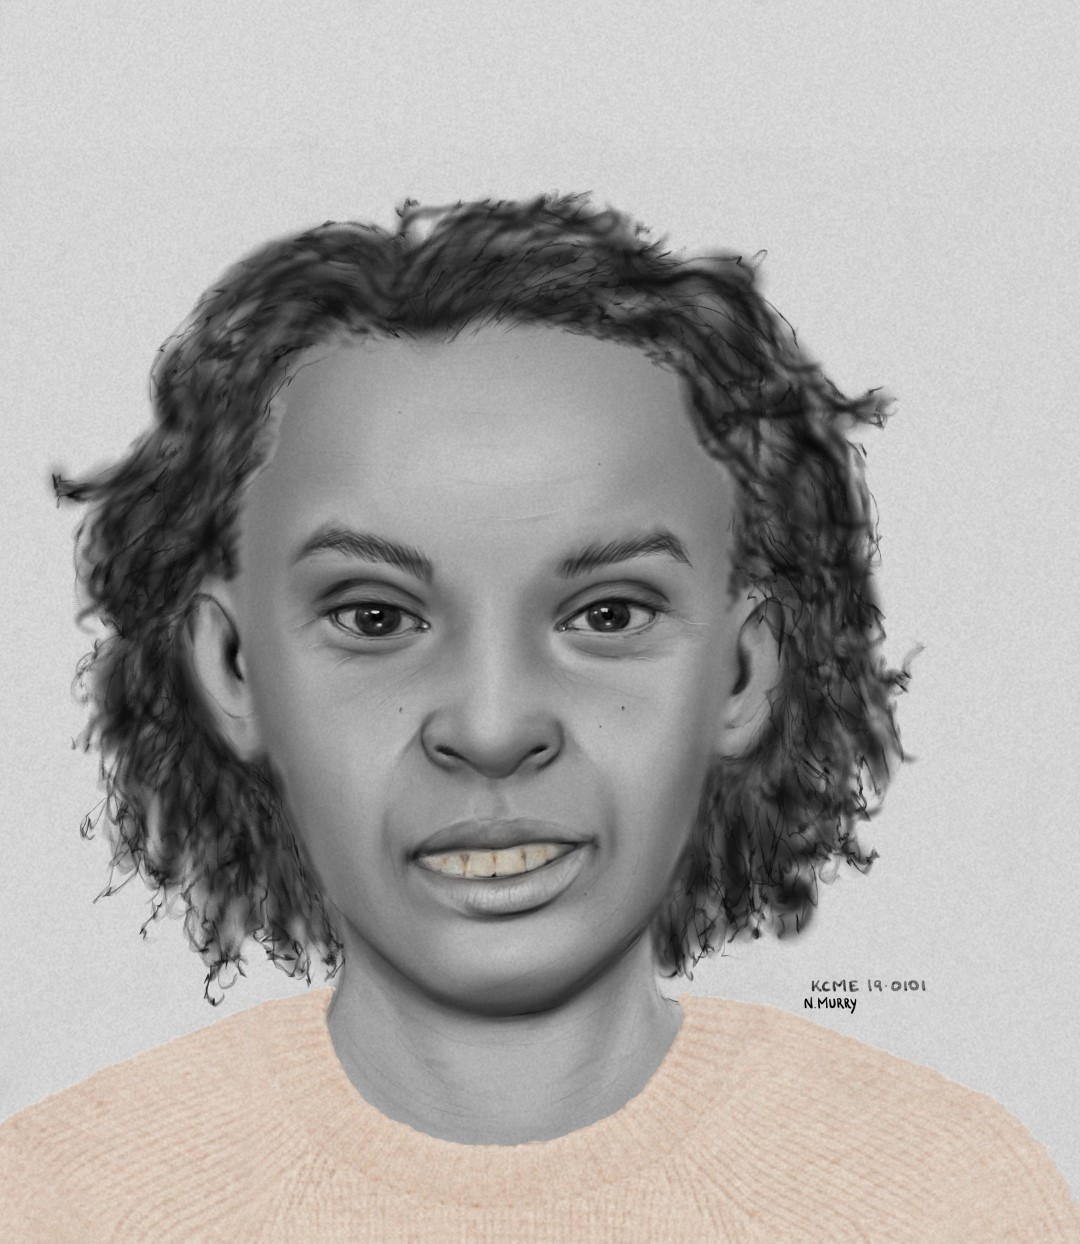 Unidentified remains, Case #19-0101: Adult, mixed race female found in the 700 block of 1st St., Kirkland, WA